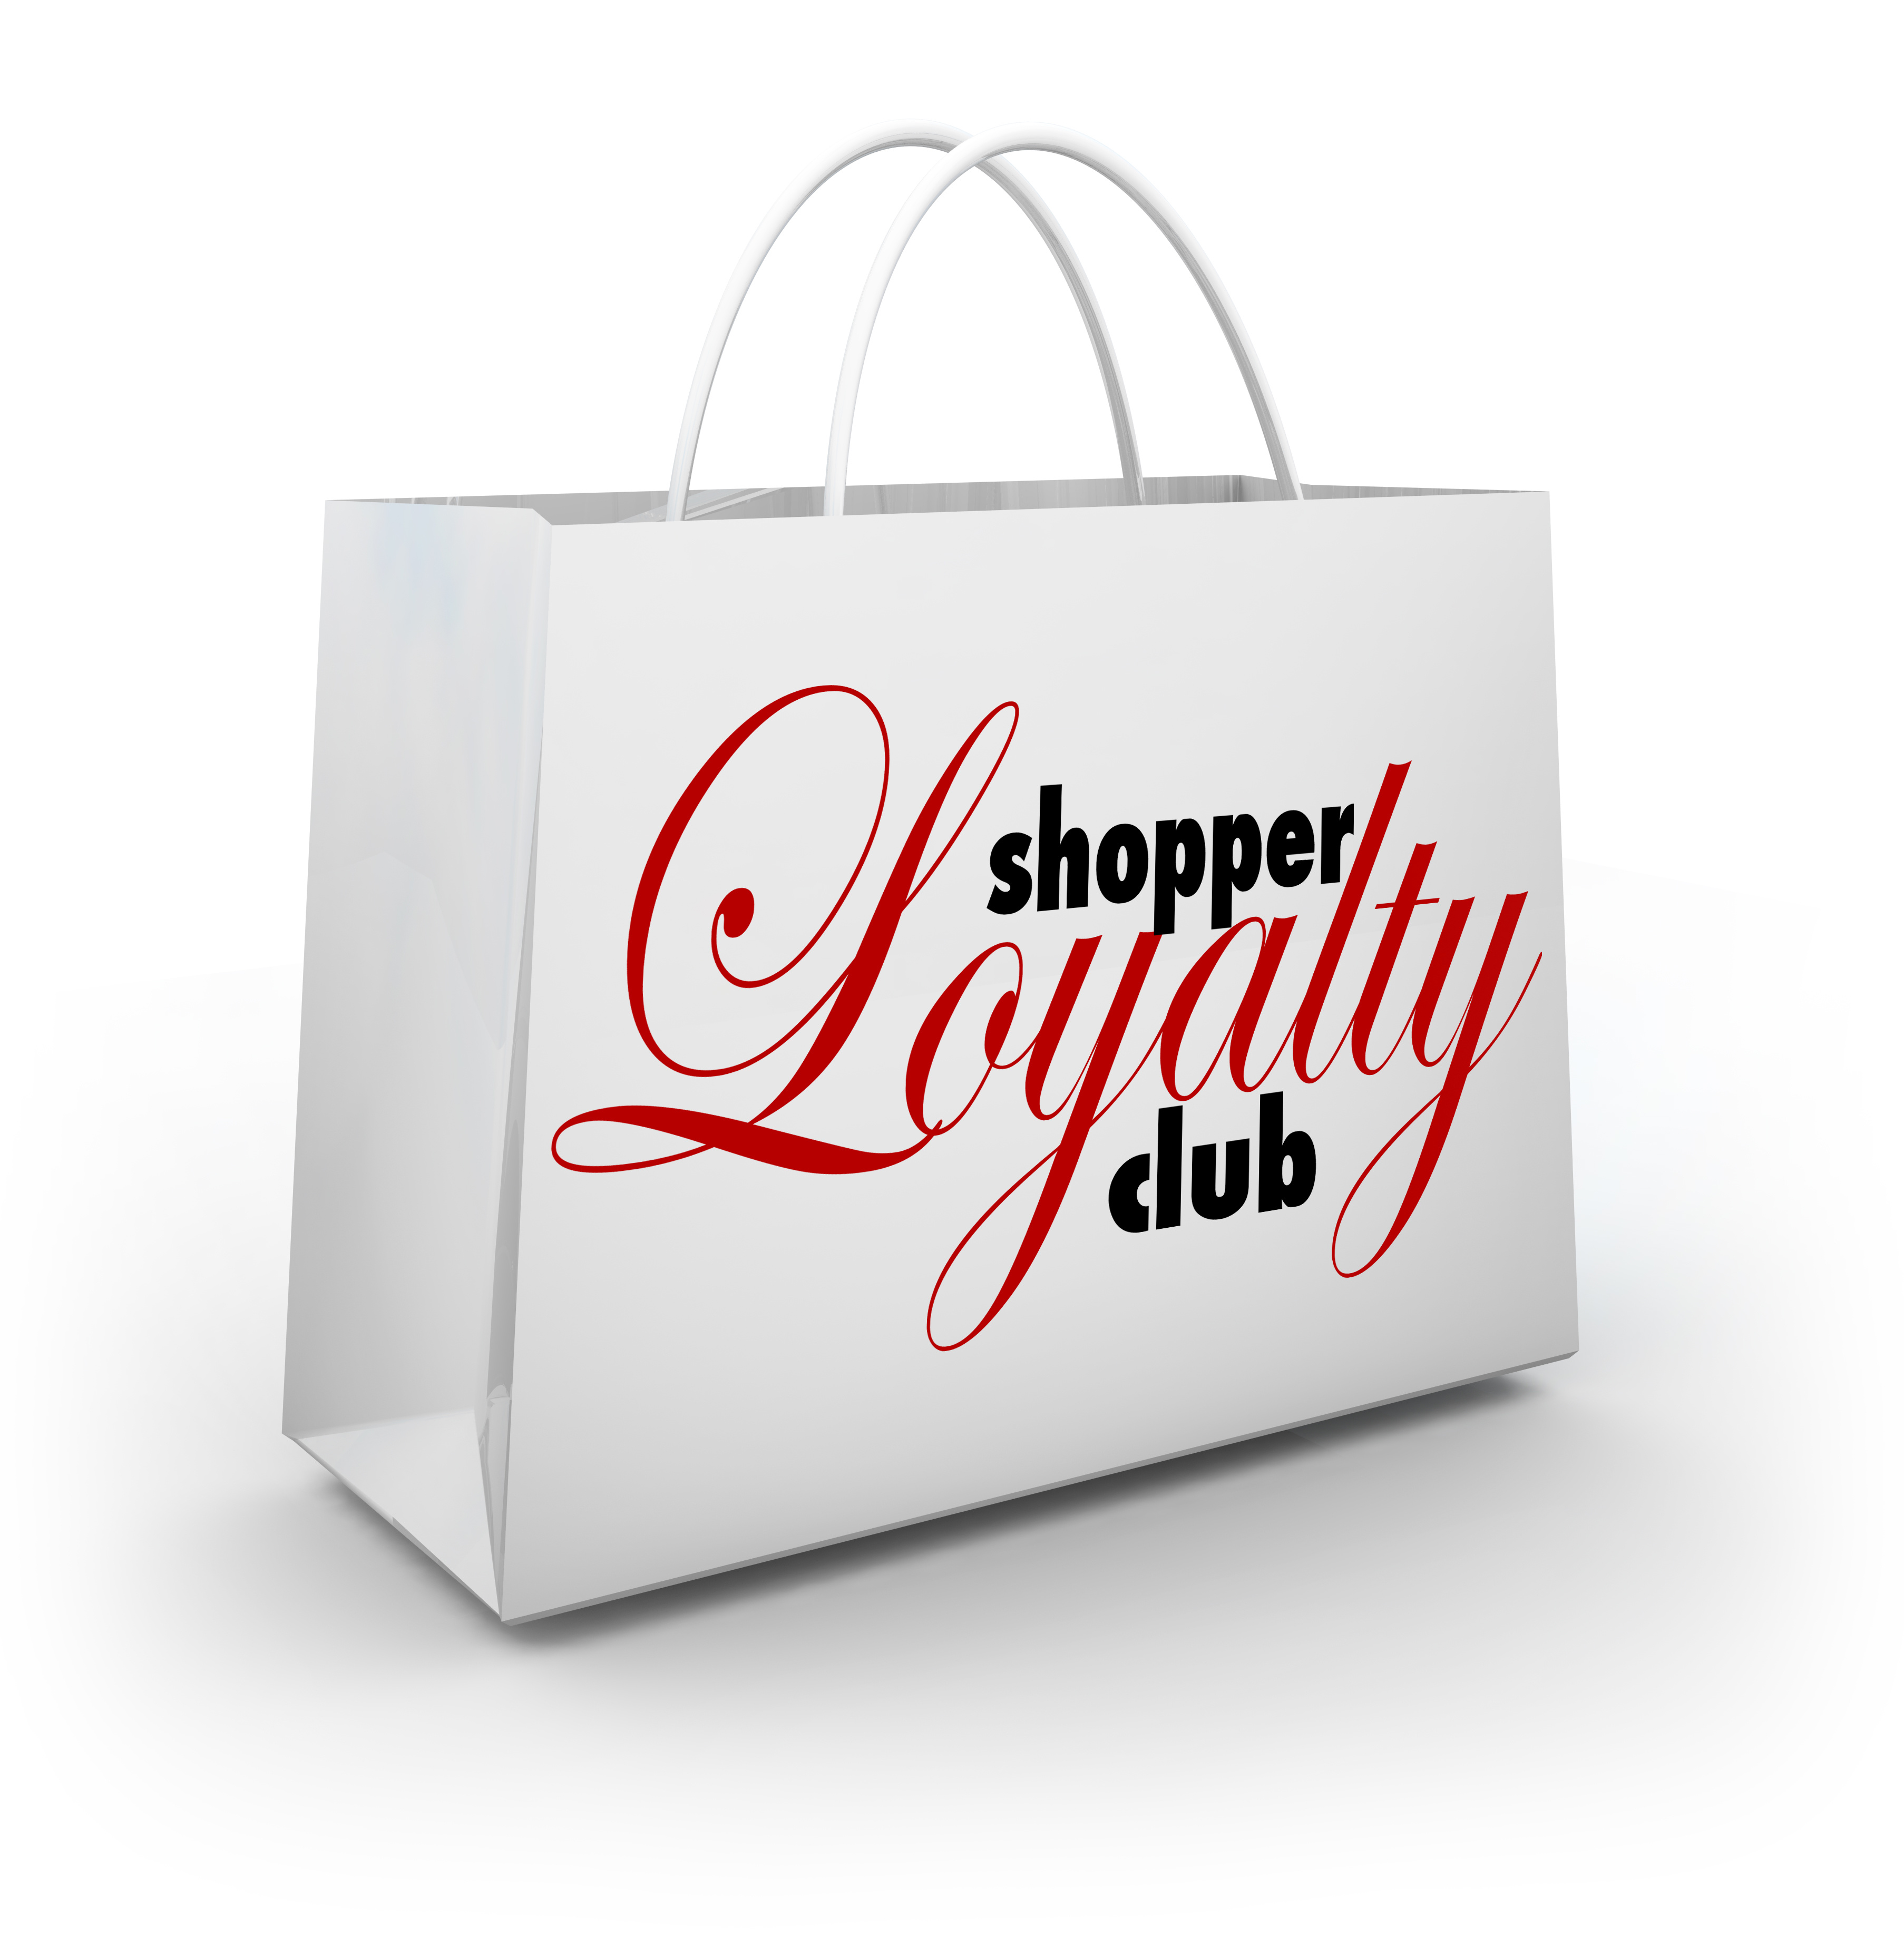 Loyalty Program Success Depends On Great CX